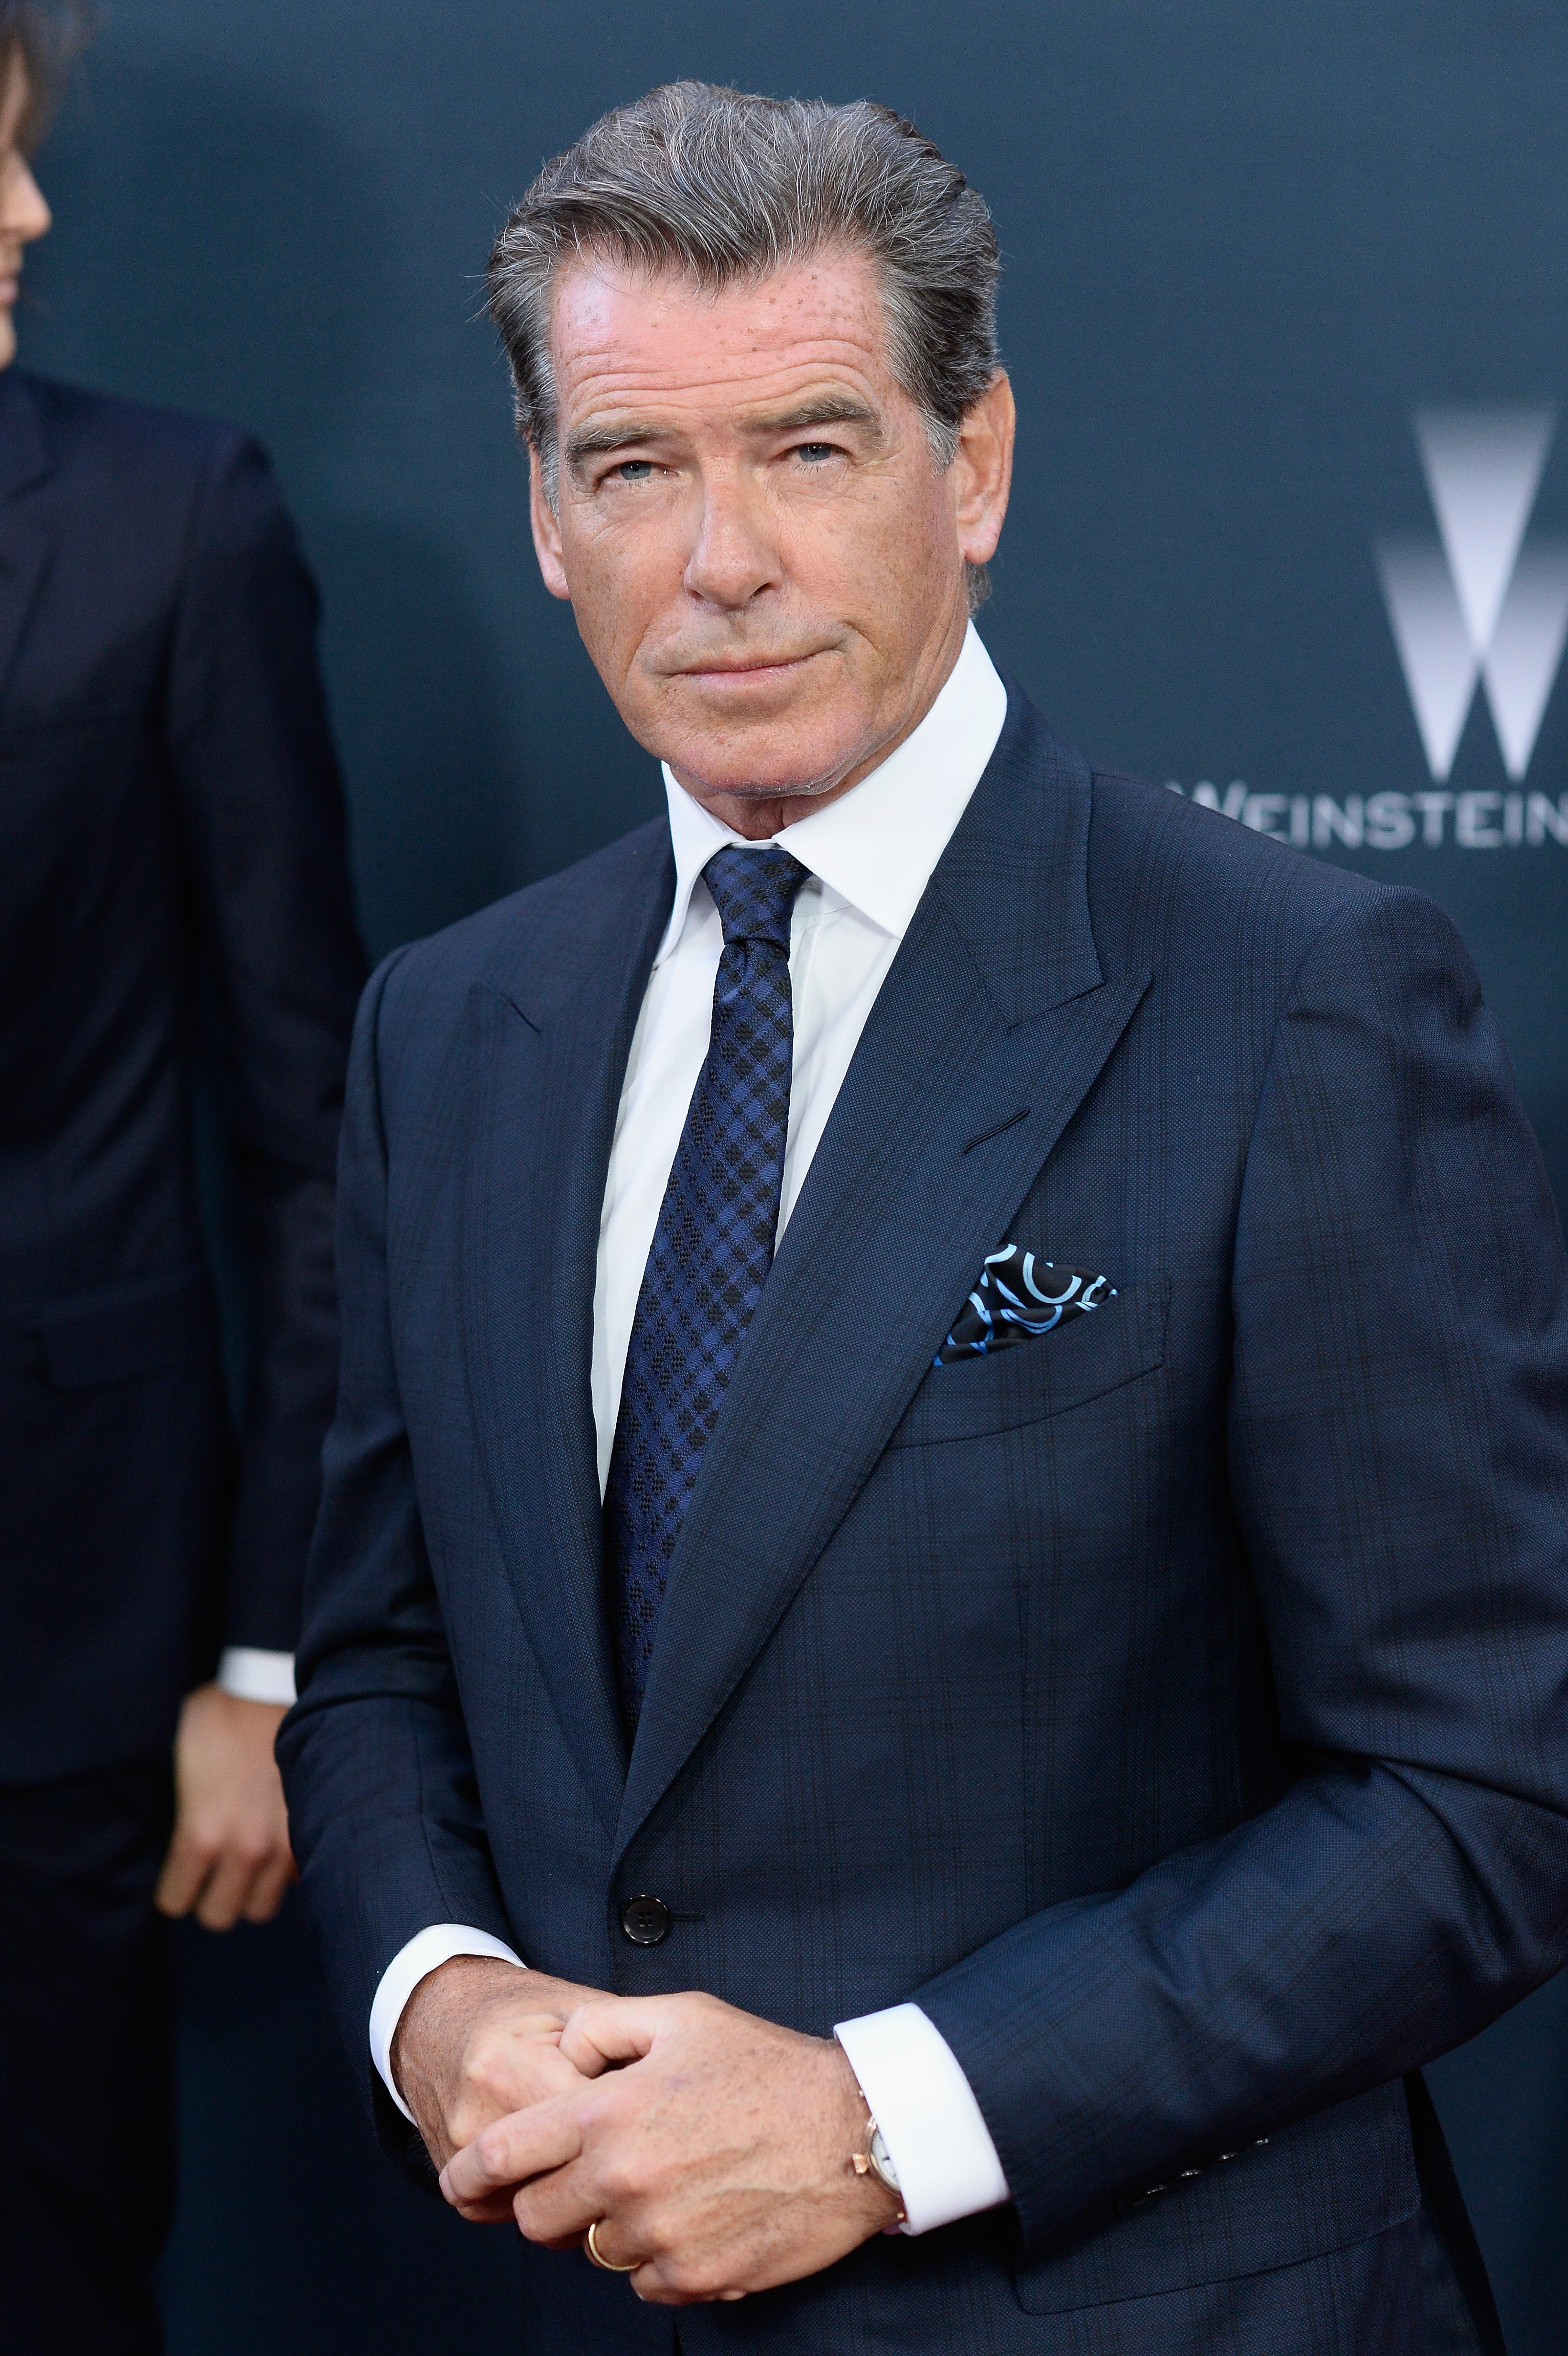 """Pierce Brosnan arrives at The Premiere Of The Weinstein Company's """"No Escape"""" on August 17, 2015, in Los Angeles, California. 